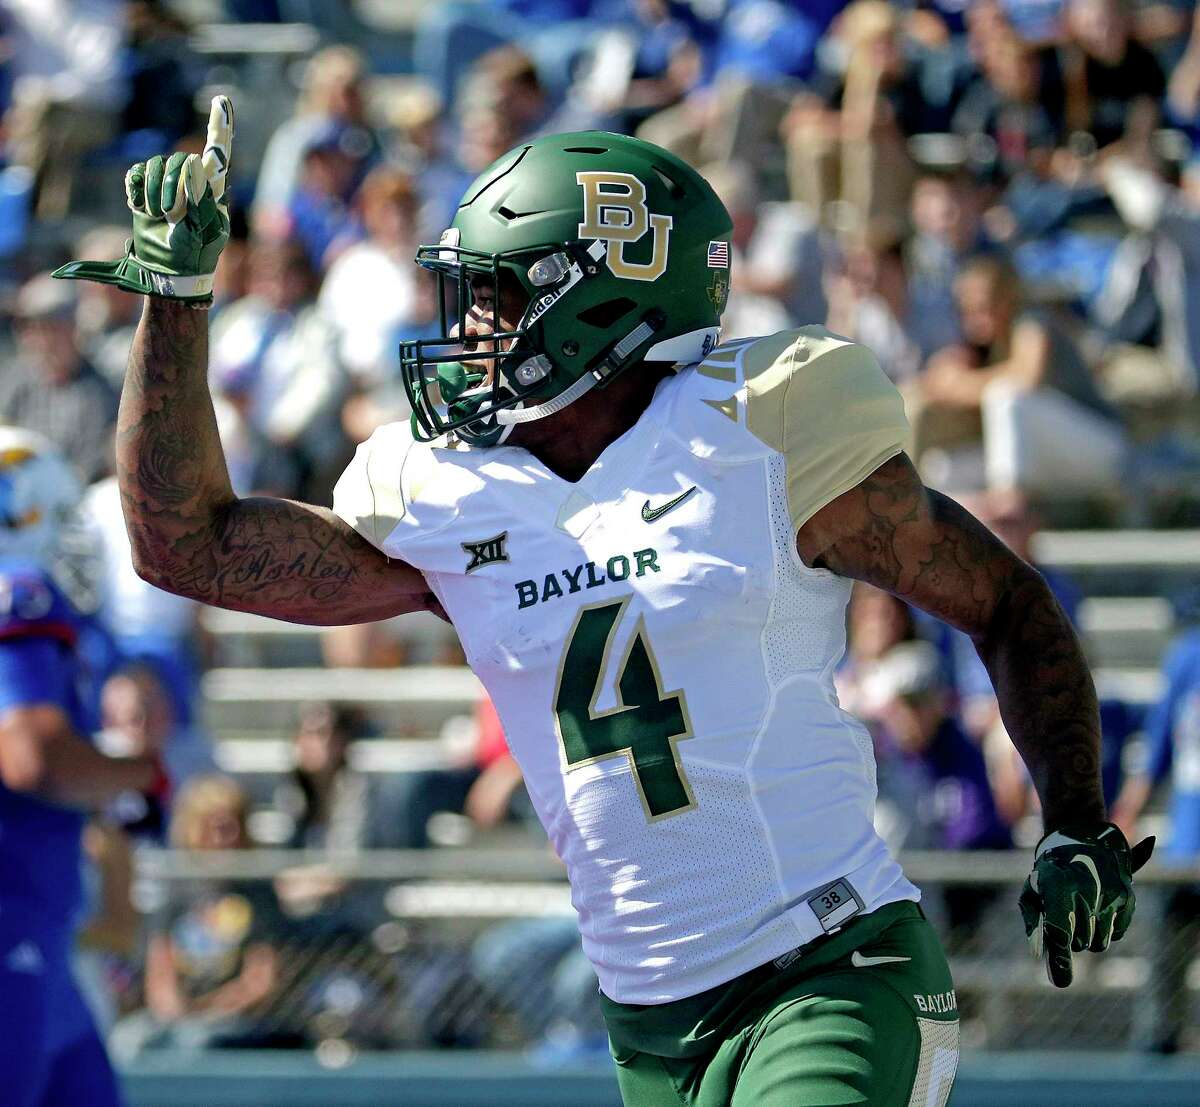 Baylor cornerback Xavien Howard celebrates after recovering a Kansas fumble and running the ball in for a touchdown during the first half Saturday.